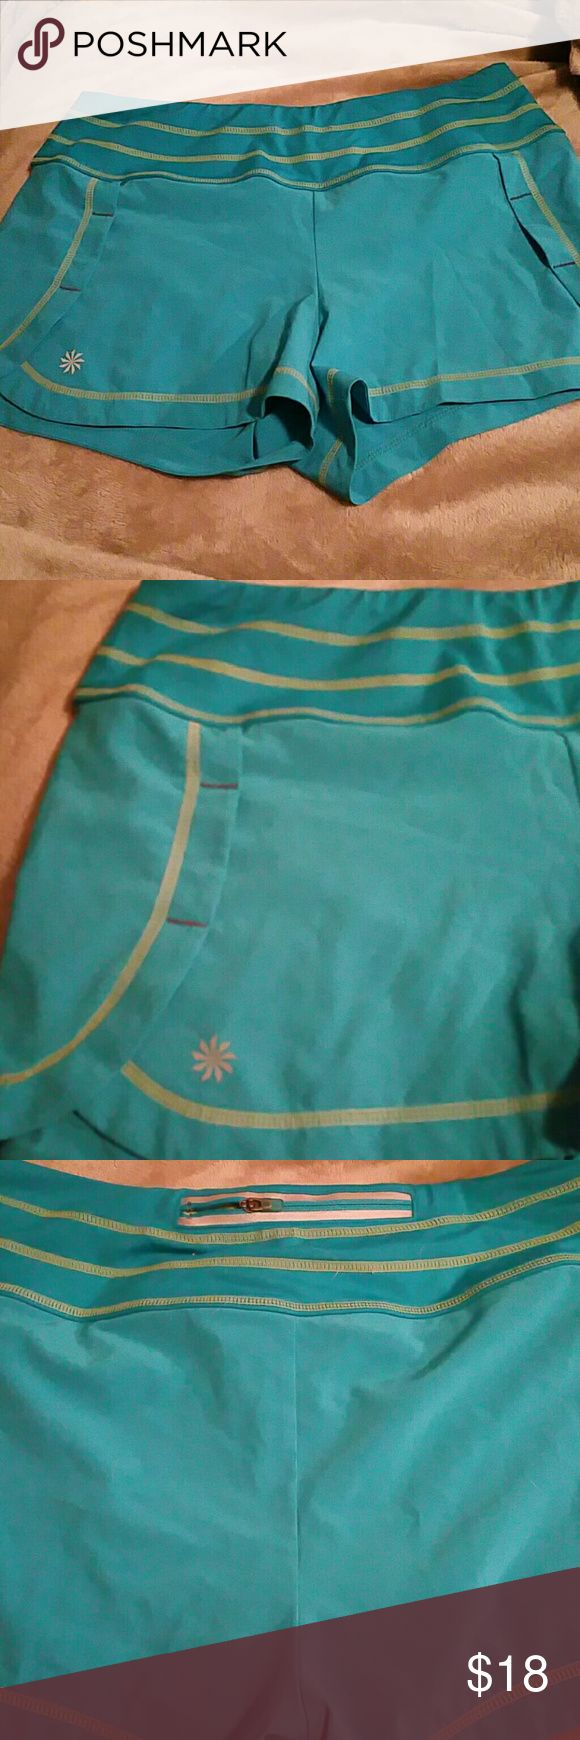 Athleta Small Turquoise Blue Running Shorts Athleta Size Small Turquoise Blue Running Shorts  86% polyester 14% spandex  Wide waist band to prevent muffin top  Cooling type material  Inner lining   Zipper in back to hold key, credit card, etc  Cute side stiching  and smooth corners for unique modern look  Worn once just to try on  I have a dog, but he's kept away from clothes, just a heads up.  Thanks for looking! Athleta Shorts